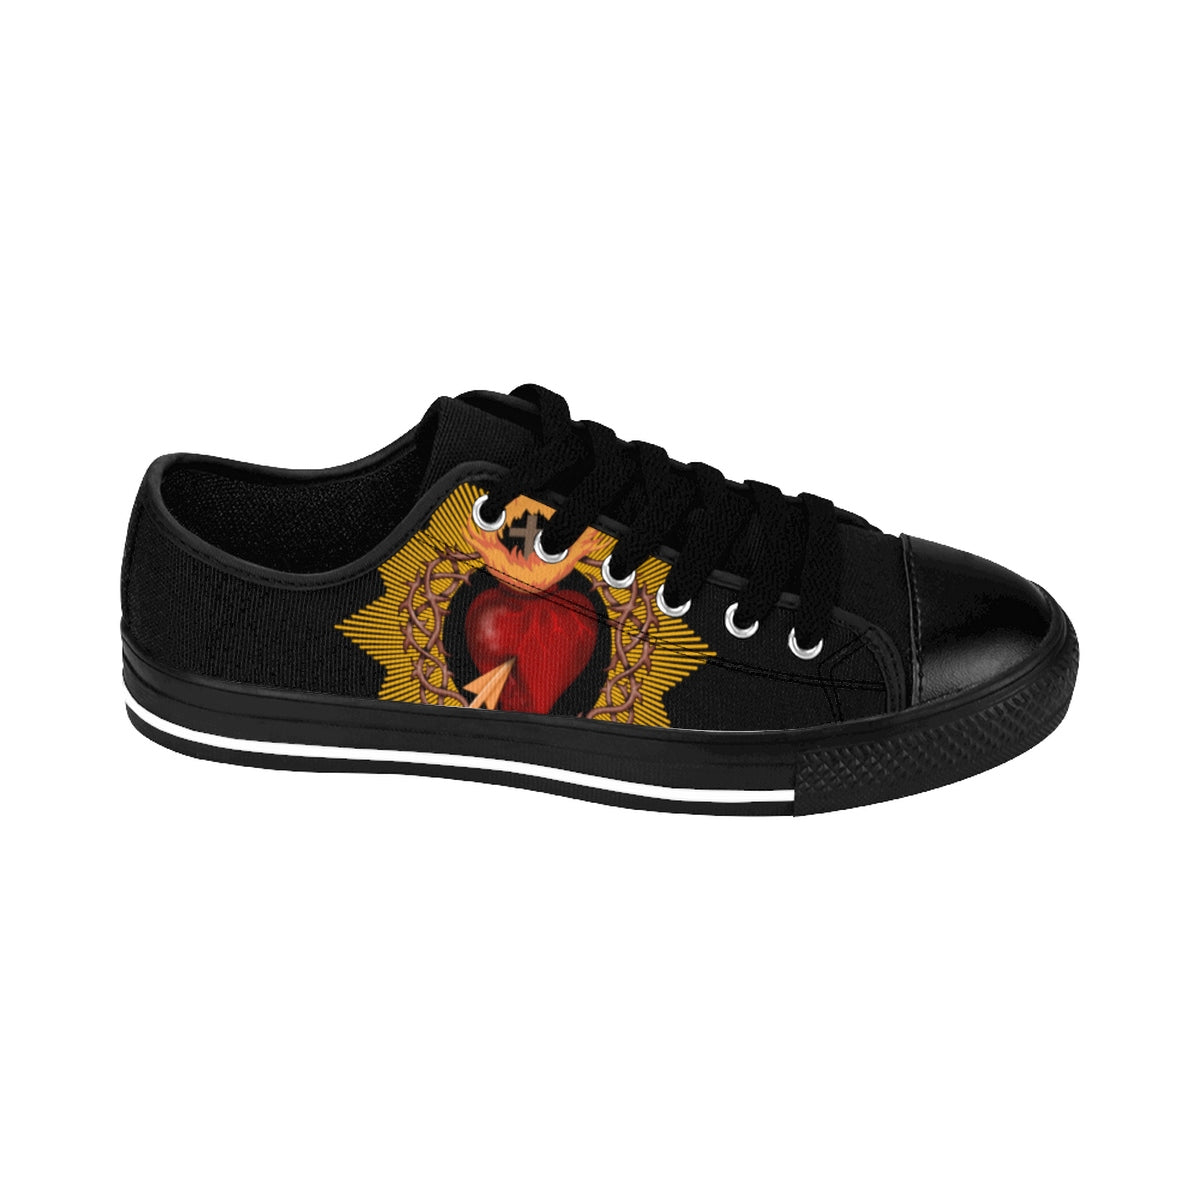 Men's Black Sacred Heart Sneakers (order one size larger than needed)